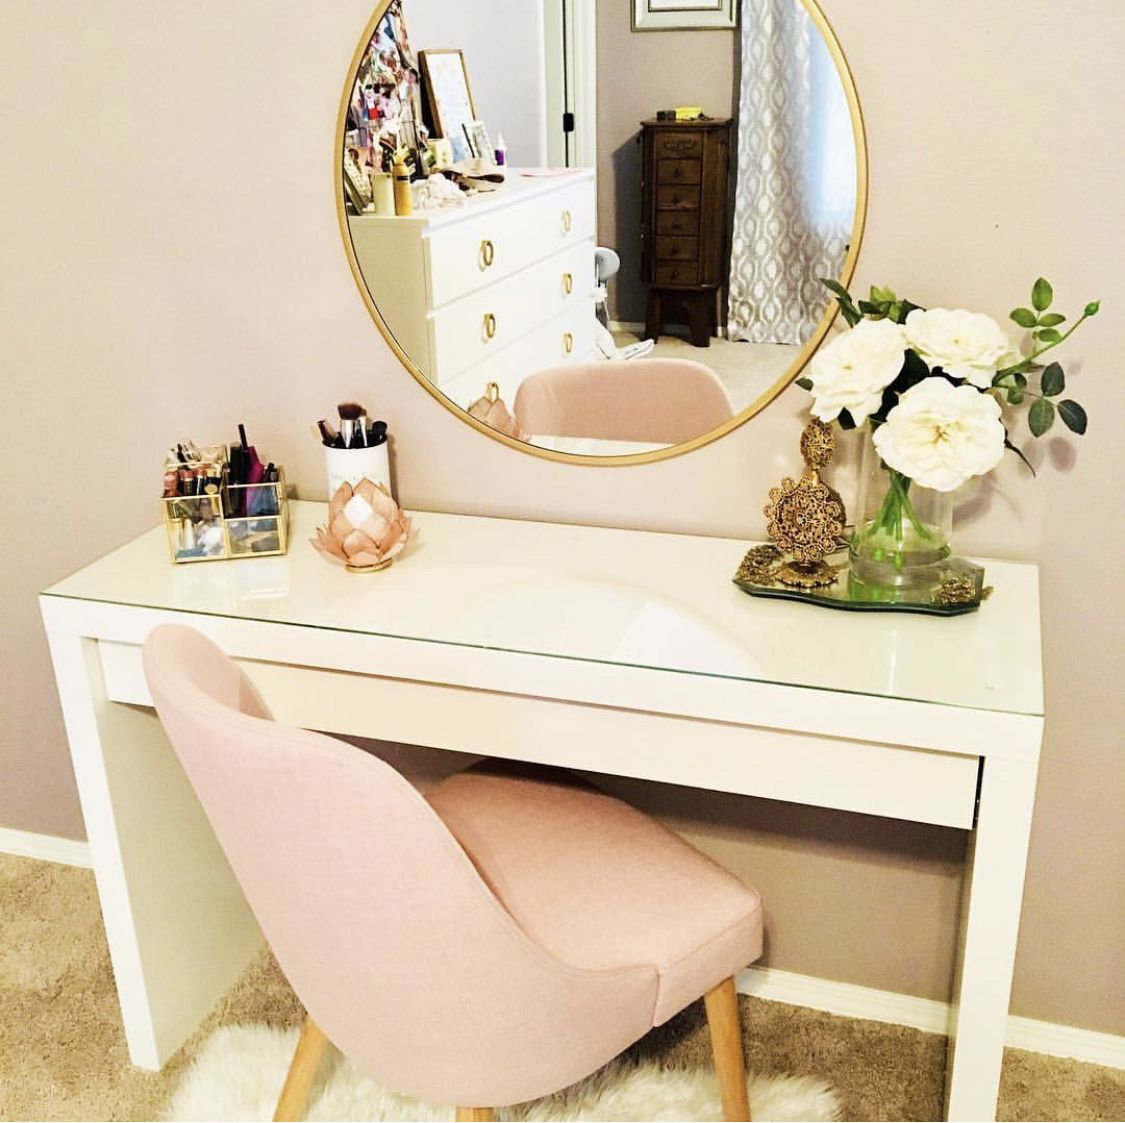 How To Style The Ikea Malm Vanity Table Dorothy Pro Blog Ikea Vanity Table Ikea Vanity Bedroom Makeup Vanity